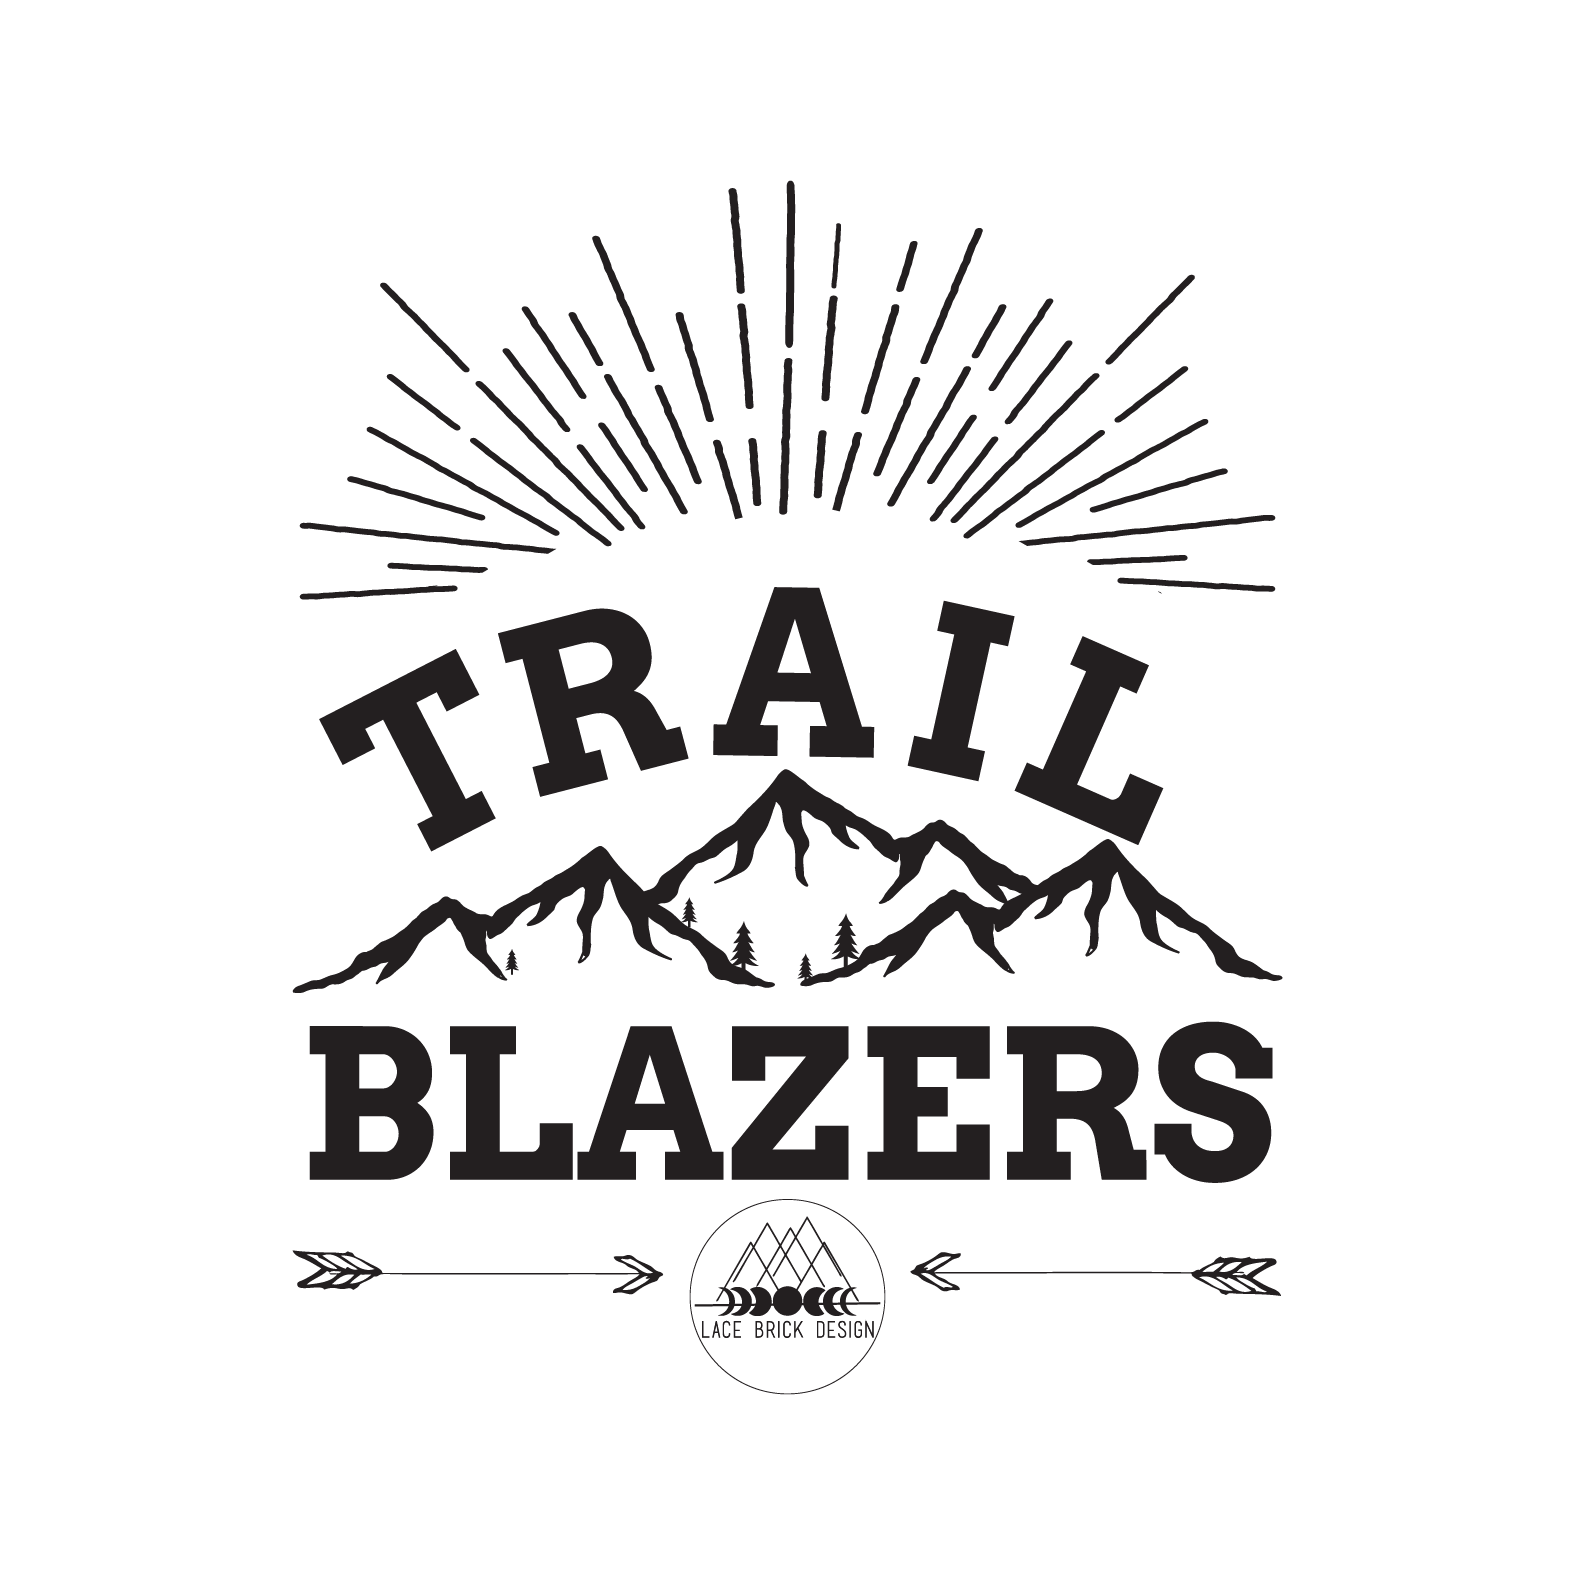 Our Trailblazer Tribe!